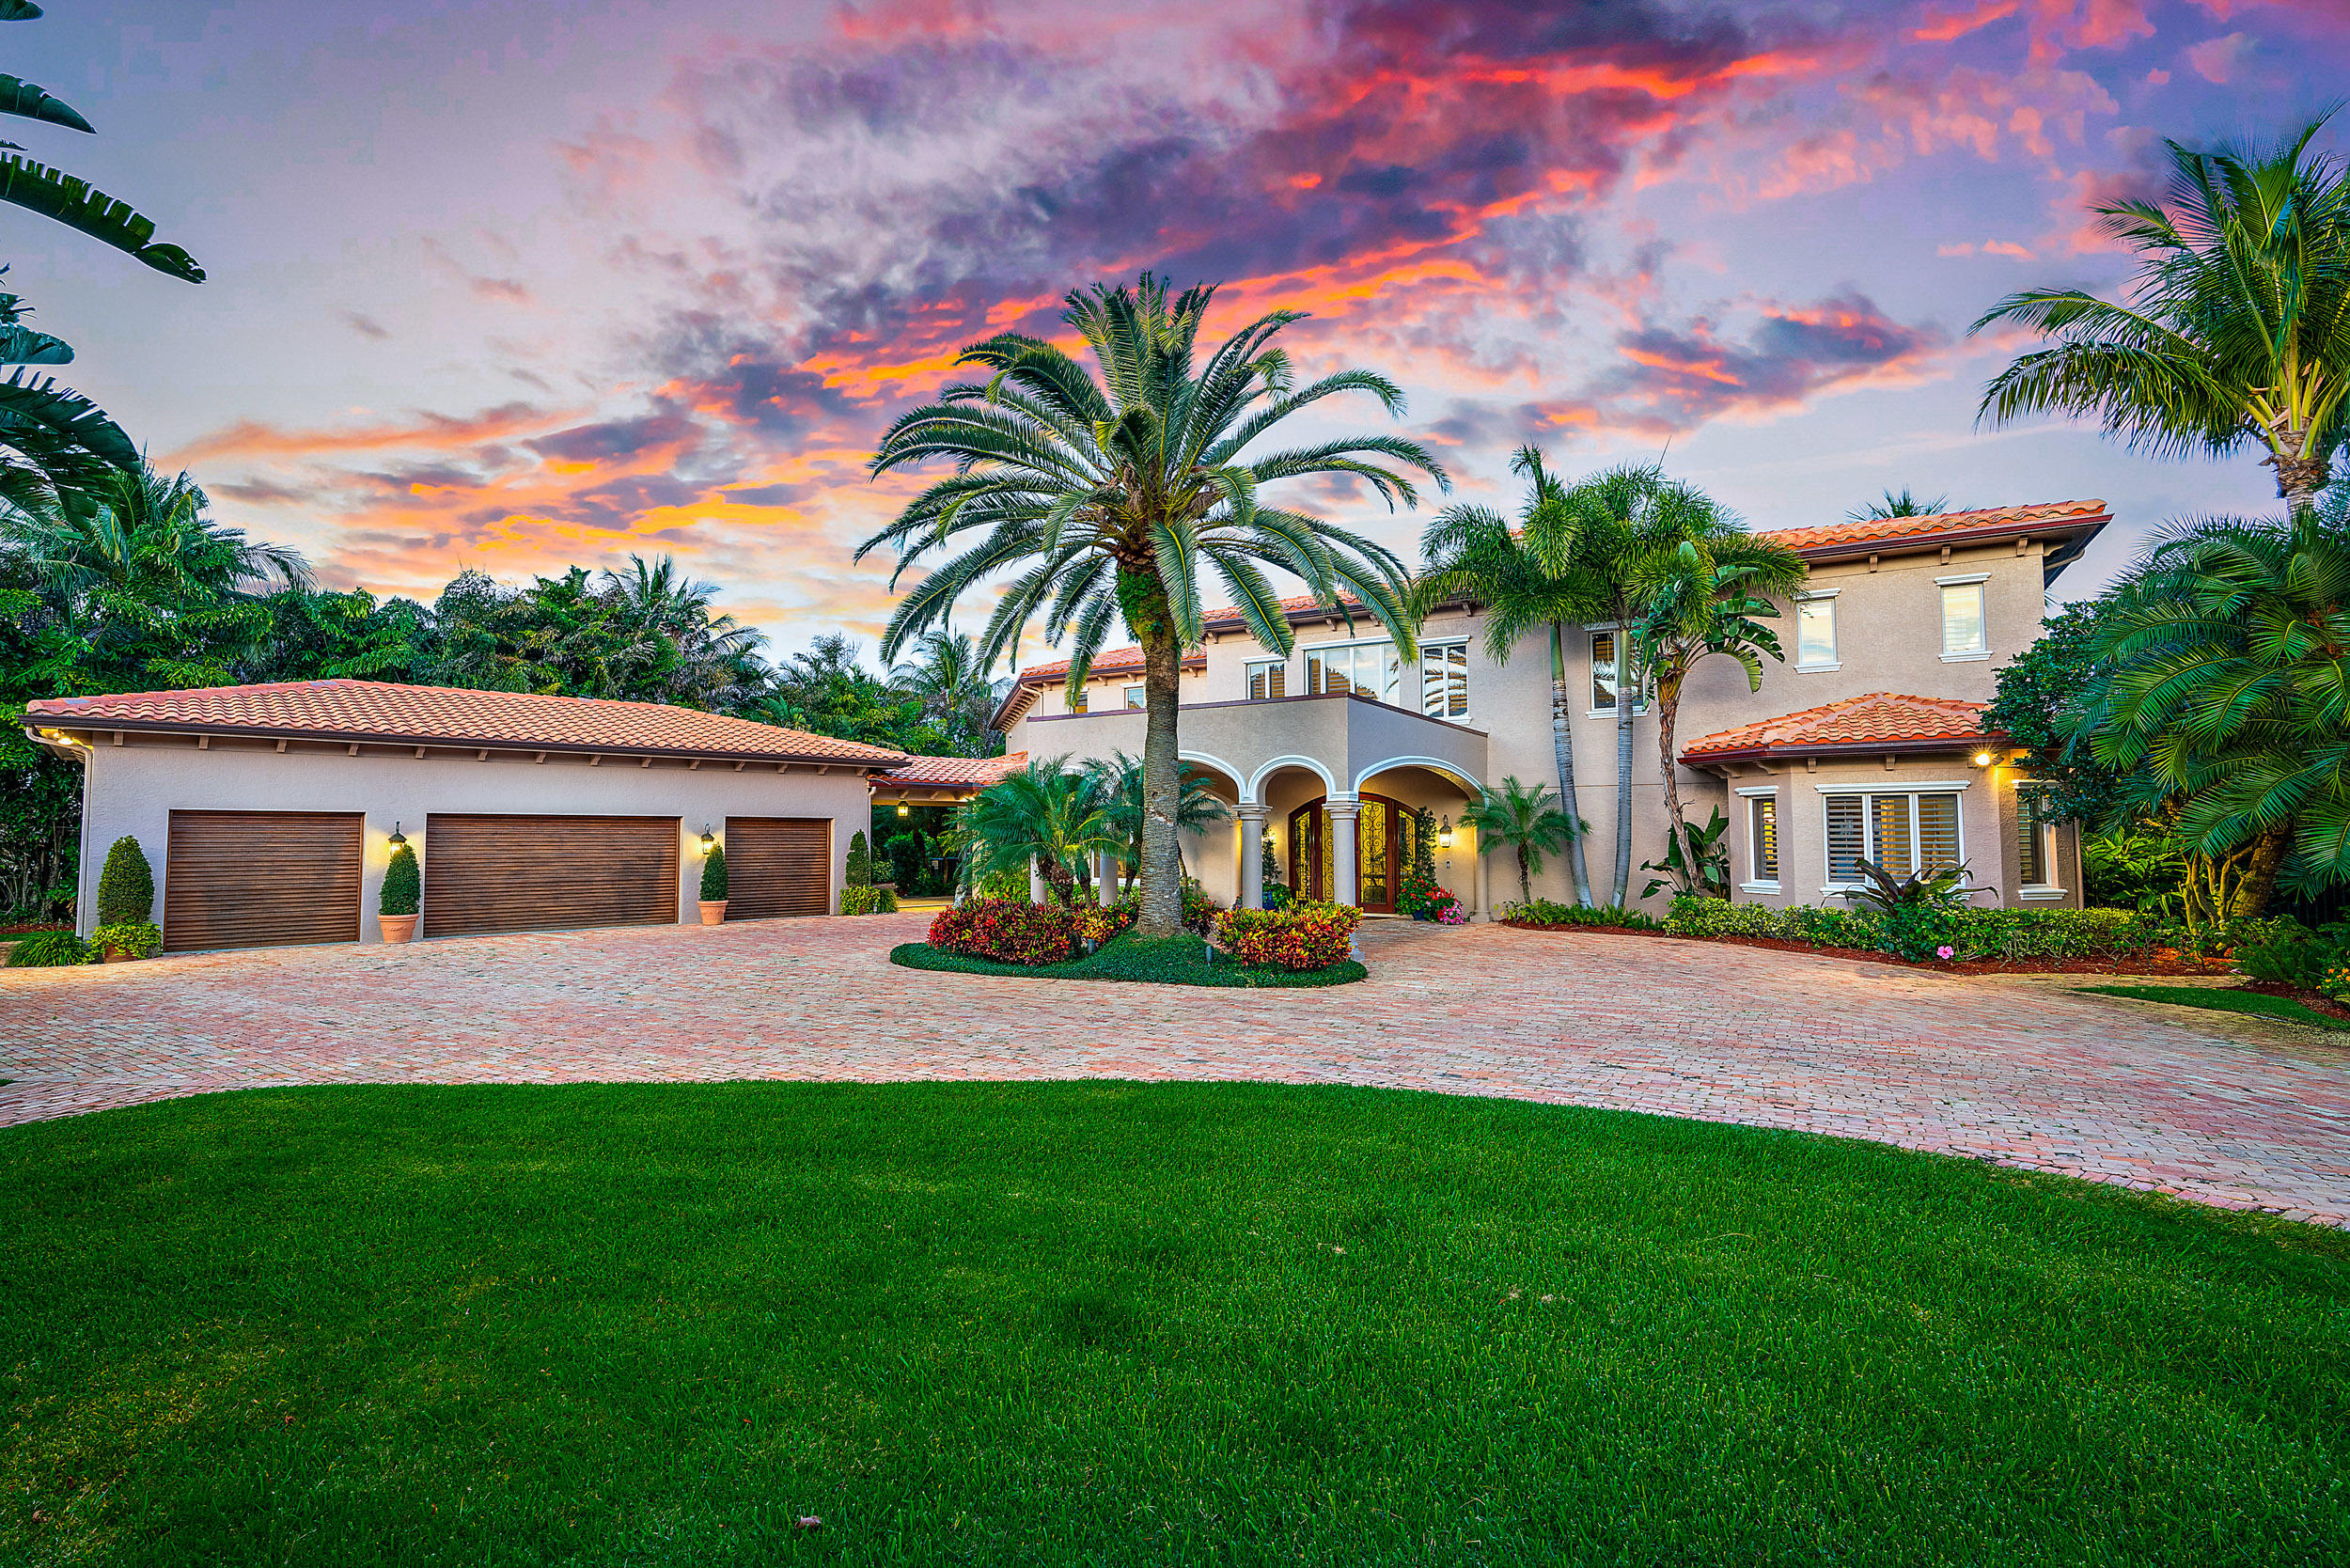 New Home for sale at 19000 Point Drive in Tequesta